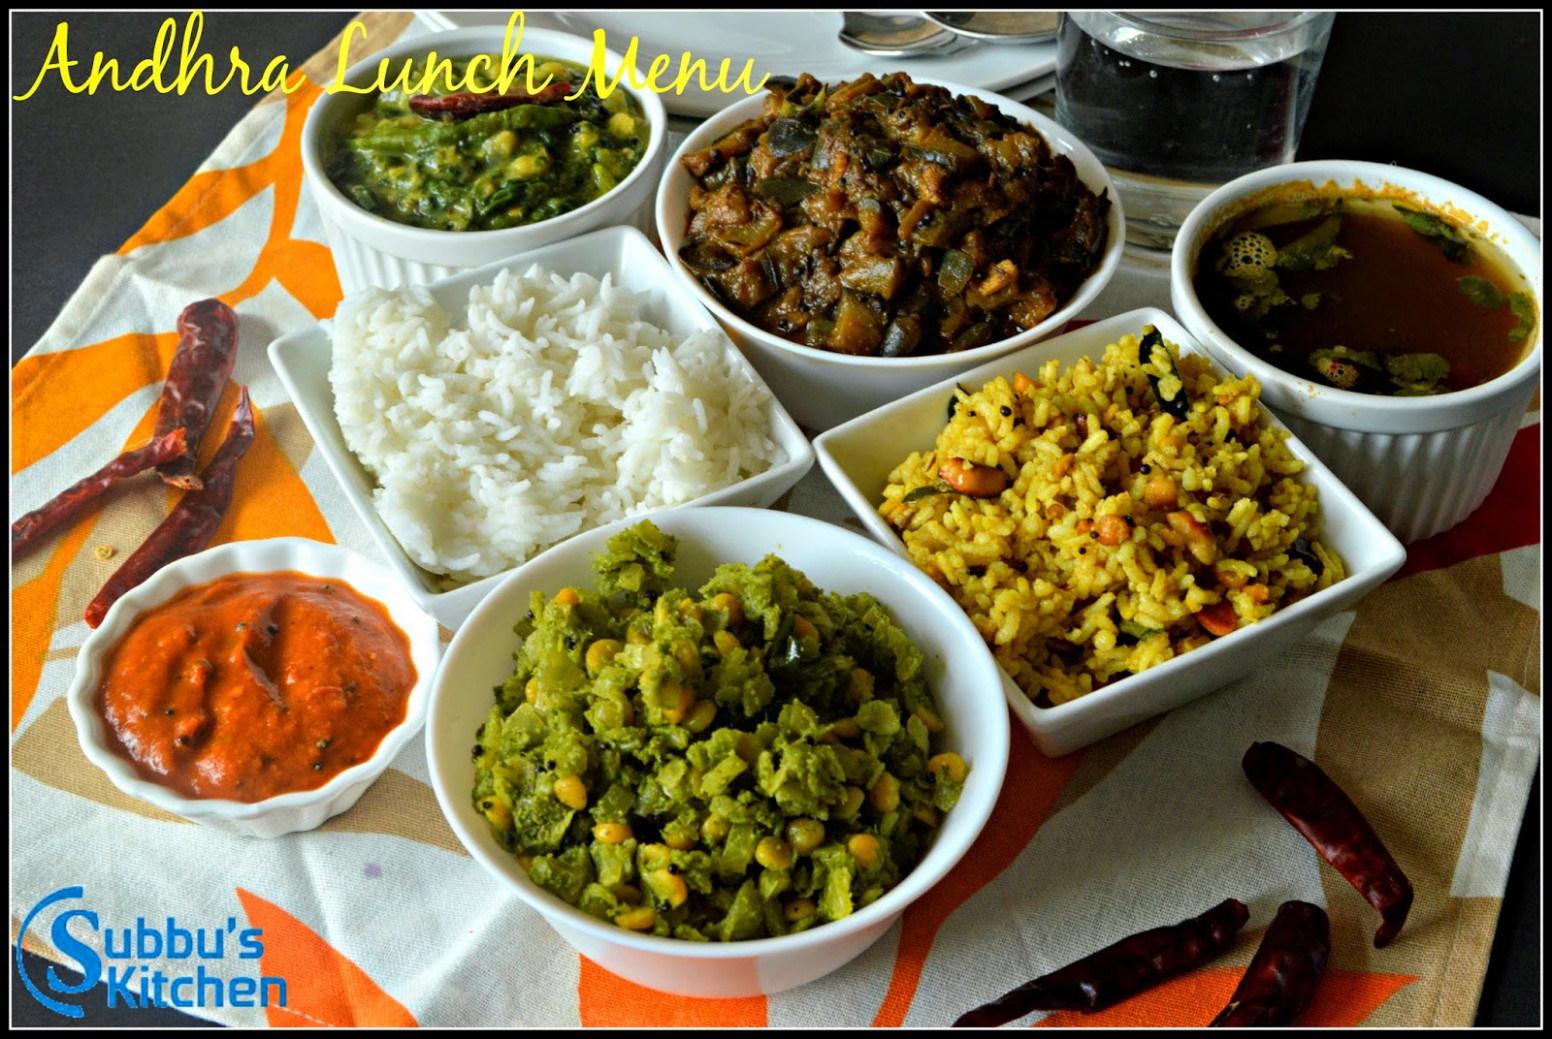 South Indian Lunch Menu 13 - Andhra Lunch Menu - Subbus Kitchen - dinner recipes veg south indian